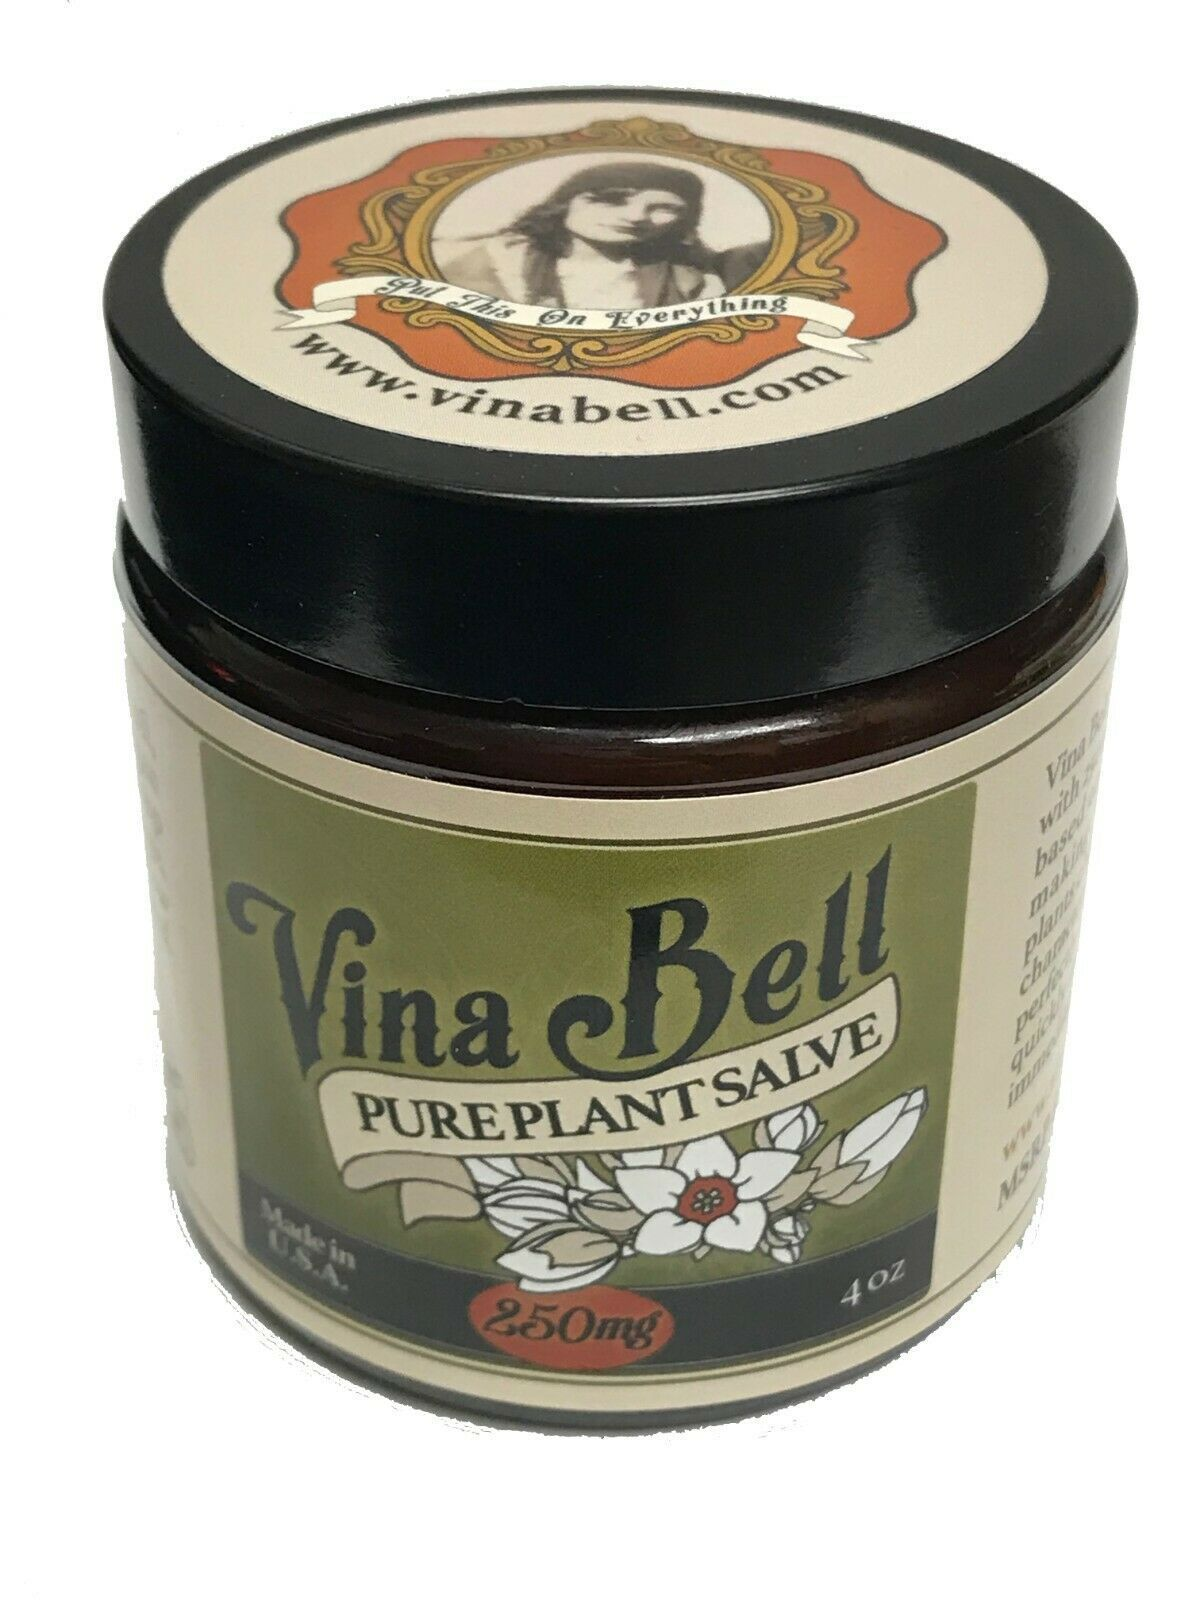 Vina Bell 250mg CBD Hemp Oil Topical Cream Salve 4oz Joint / Muscle Pain Relief